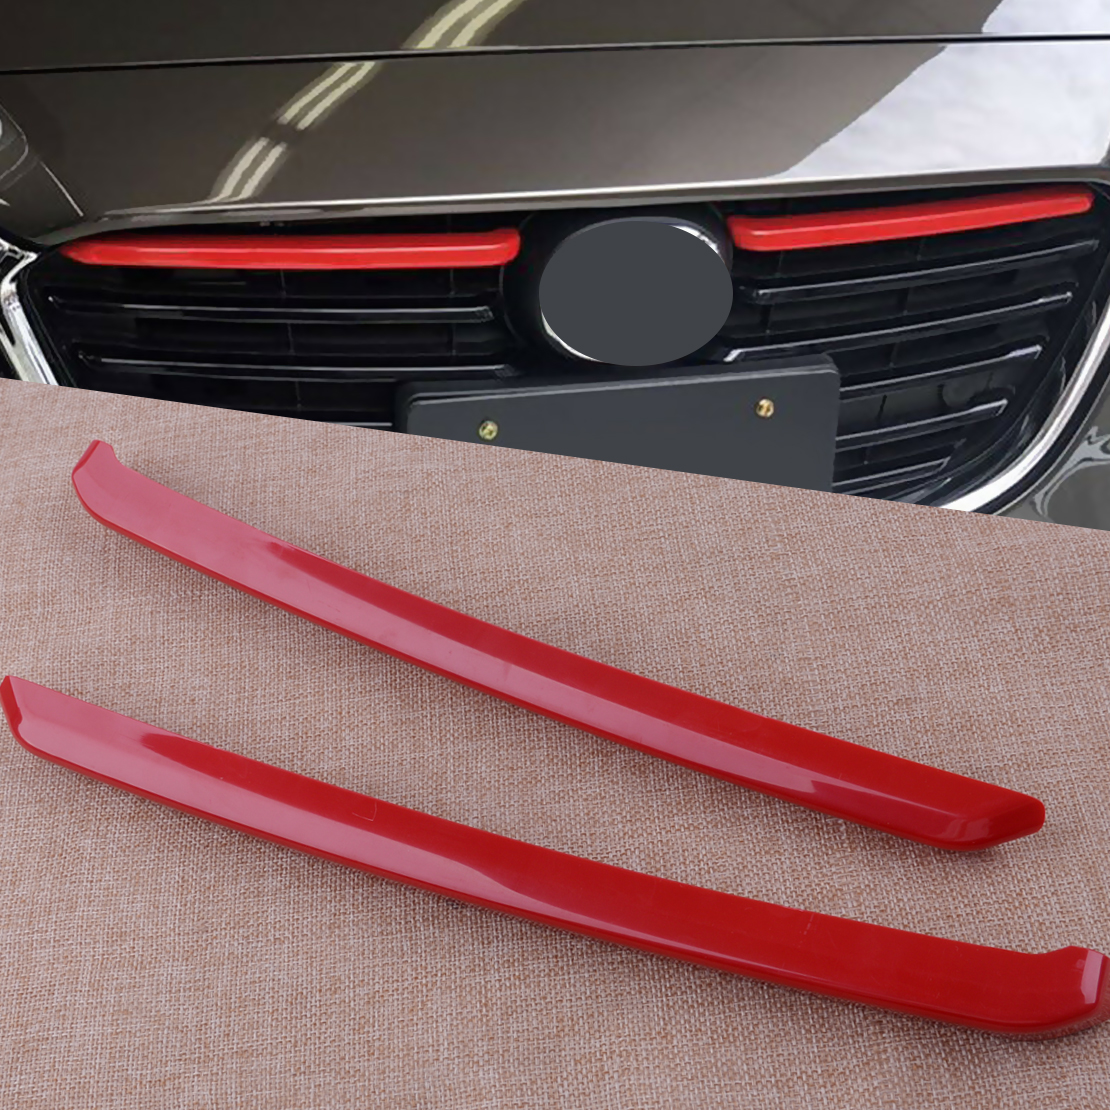 Details about  /2x Red Front Bumper Grille Grill Cover Trim Fit For Mazda 3 Axela 2017-2018 New